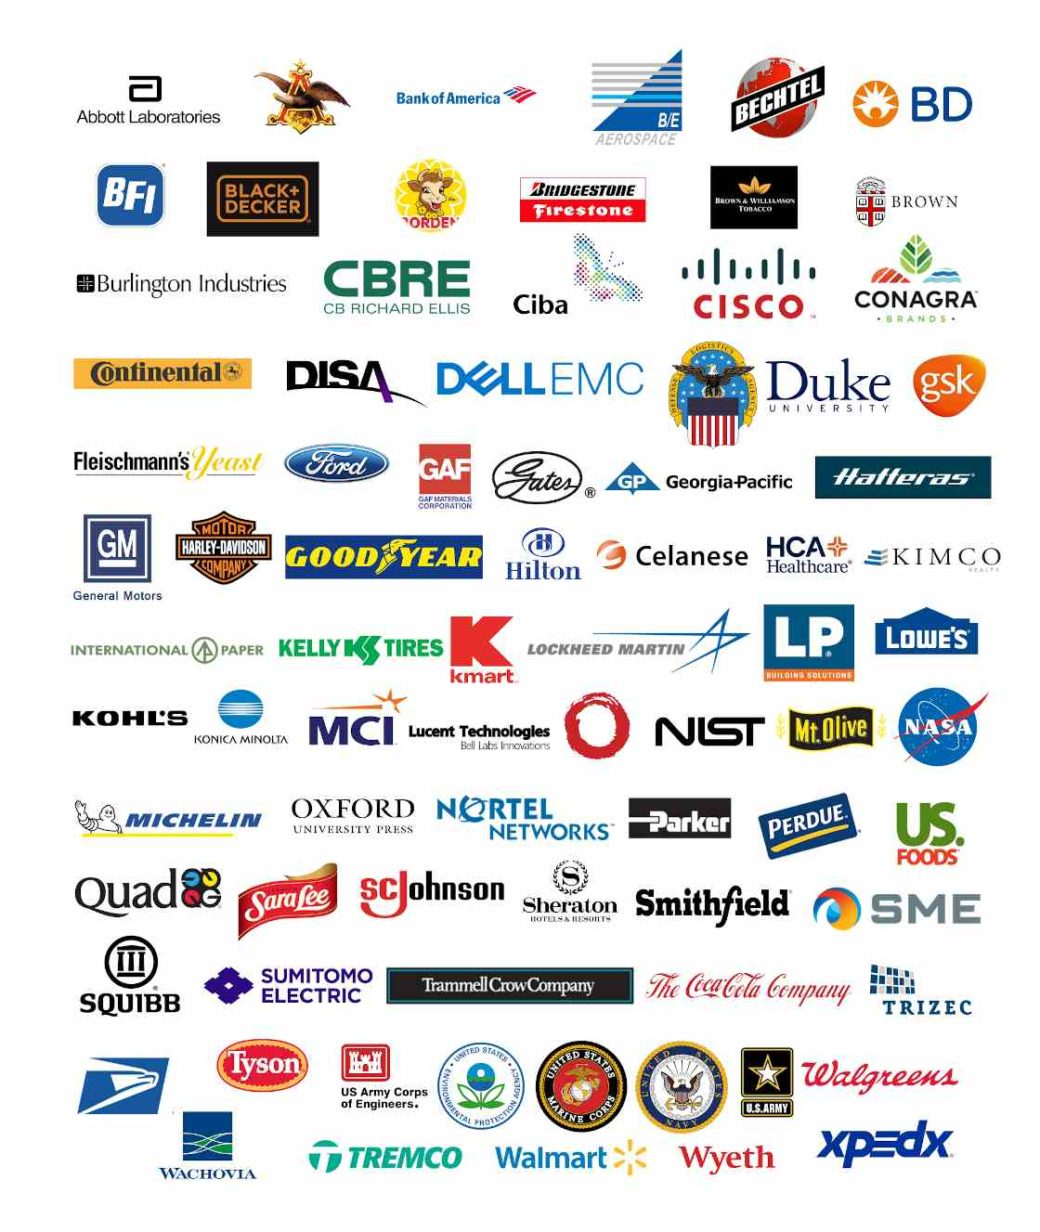 Logos of client companies